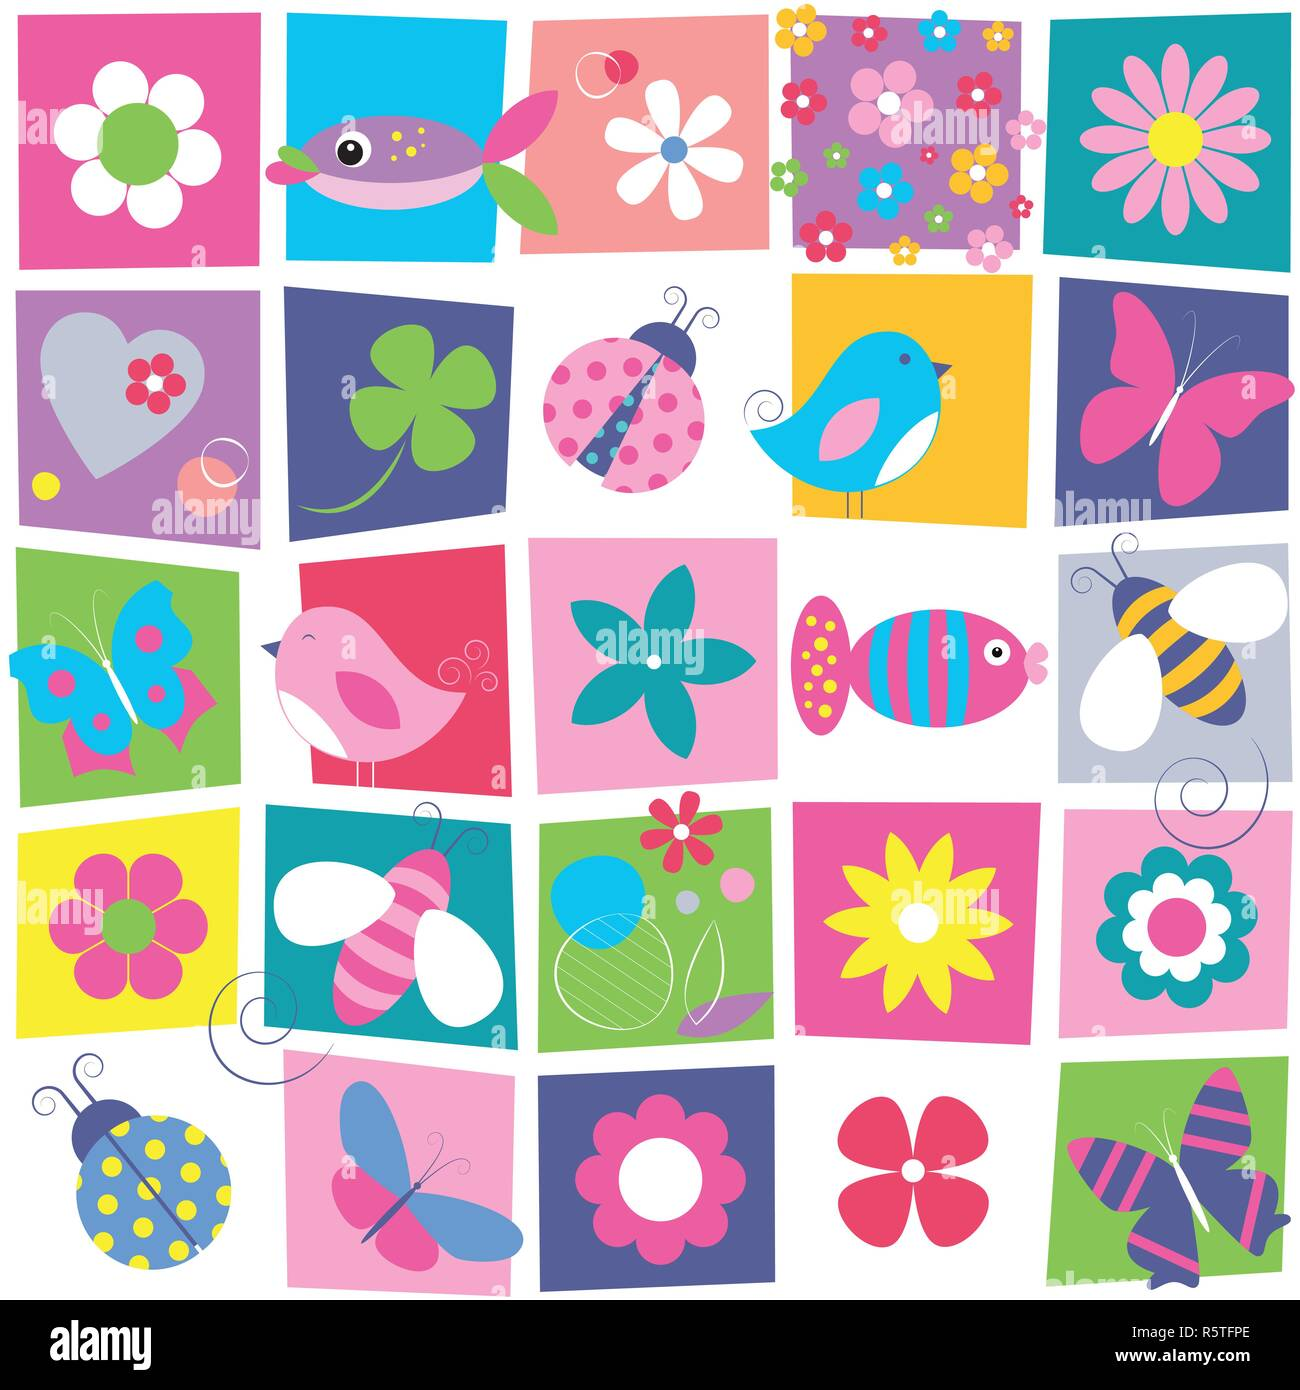 Birds bees ladybugs butterflies fish and flowers collection pattern on colorful rectangular background Stock Vector